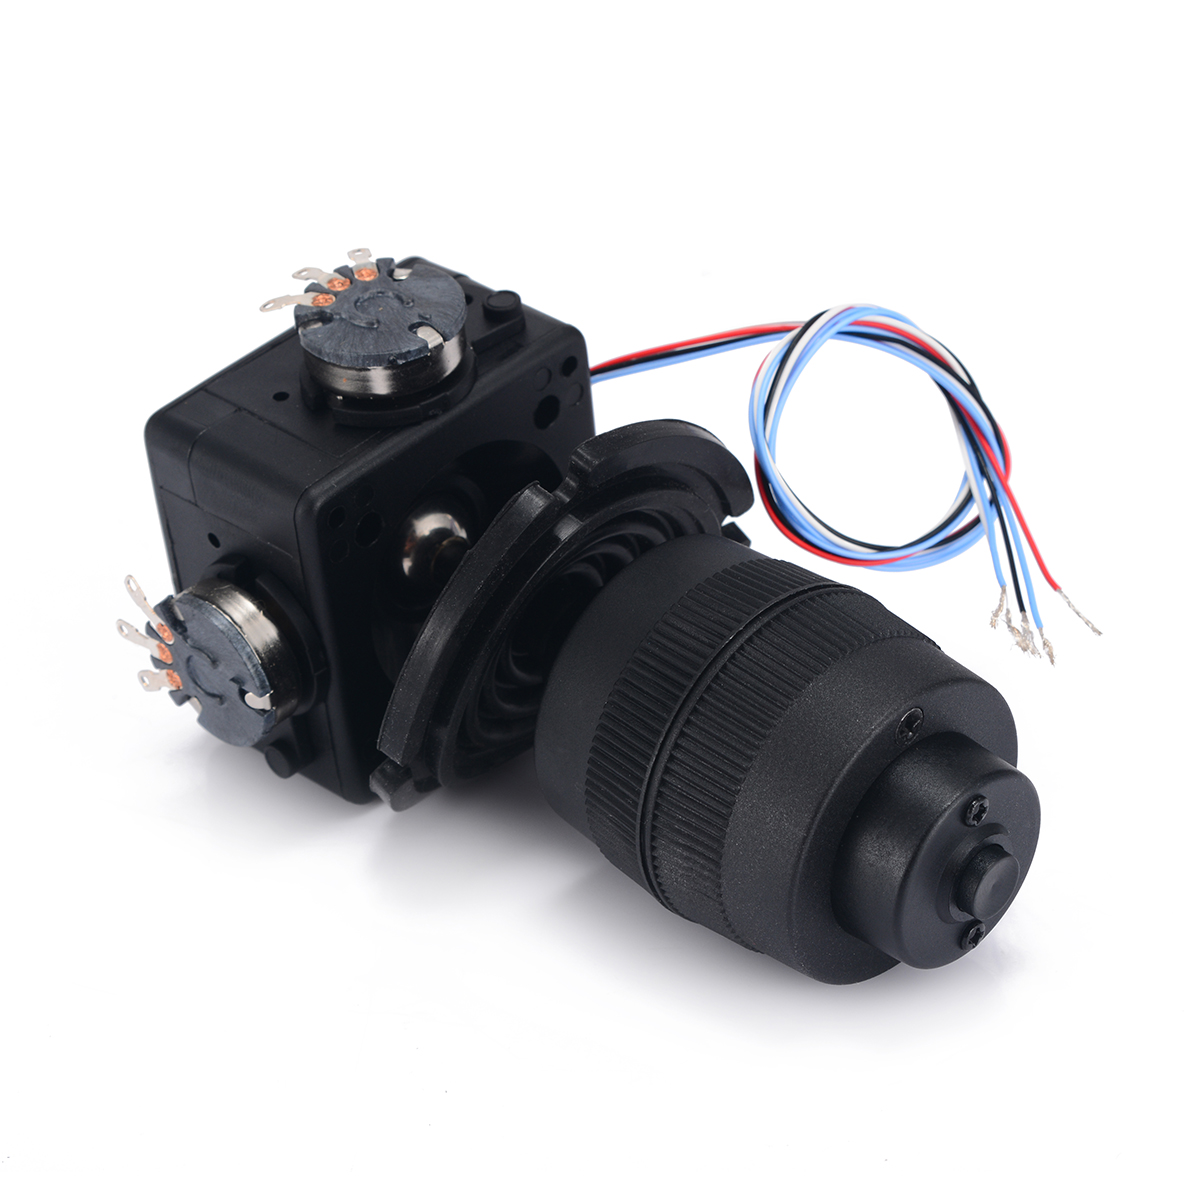 Durable Plastic 4-Axis Joystick Potentiometer Button For JH-D400X-R4 10K 4D Black with Wire Automatization Machine Control 1pc 4 axis plastic joystick potentiometer button for jh d400x r4 10k 4d with wire mayitr electric supplies tool